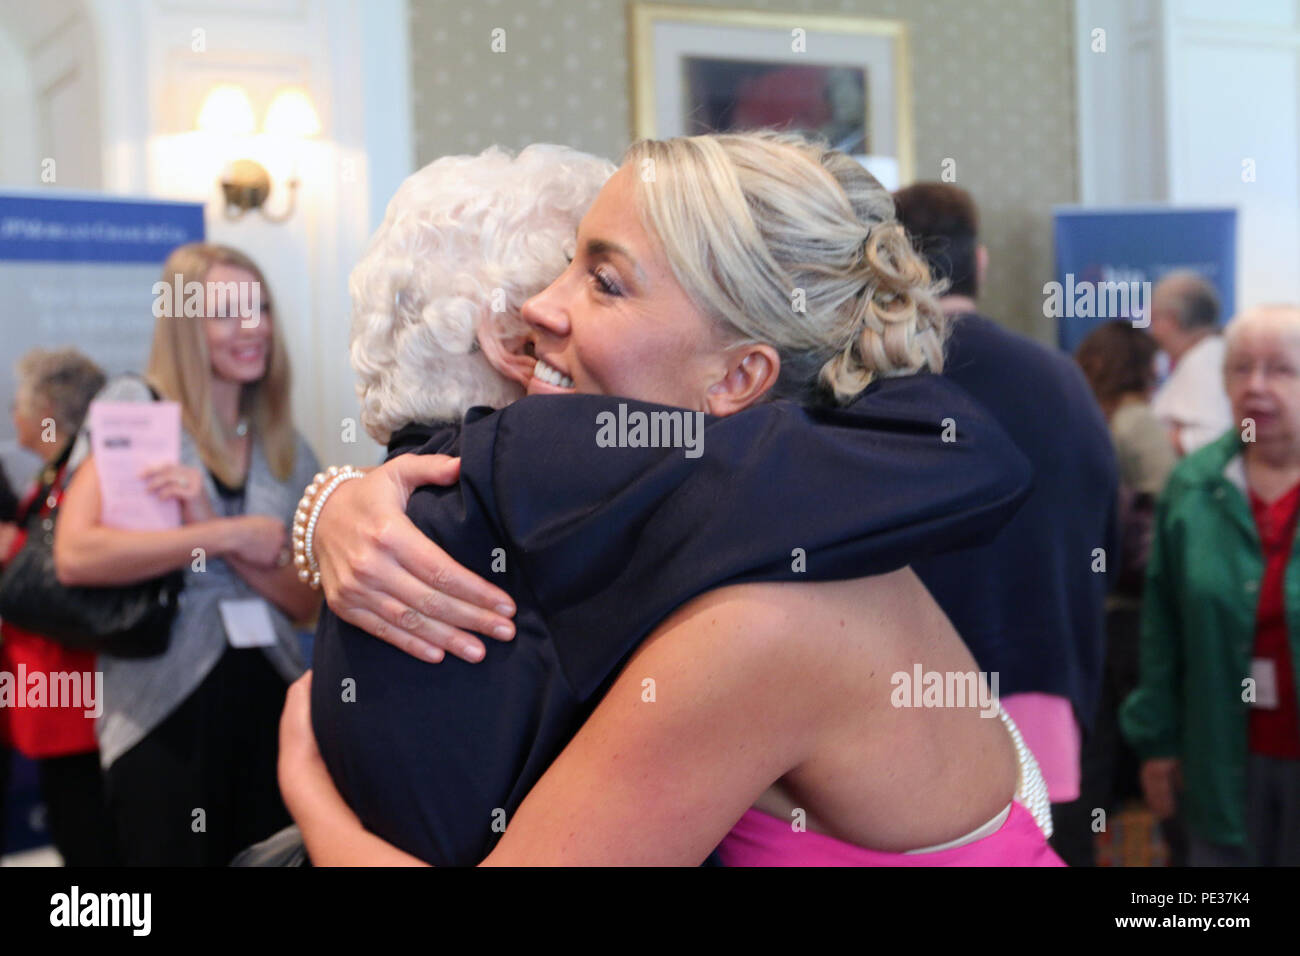 Amanda Wirtz (right), a Navy combat veteran and motivational speaker, embraces Dorothy Wolfe, a veteran of the Marines and the Air Force during the Ohio Women Veterans Conference on Sept. 12, 2015, in Columbus, Ohio. The conference is one of the largest in the nation of its kind and was attended by more than 500 female veterans. (Ohio National Guard photo by Staff Sgt. Kimberly Hill) - Stock Image